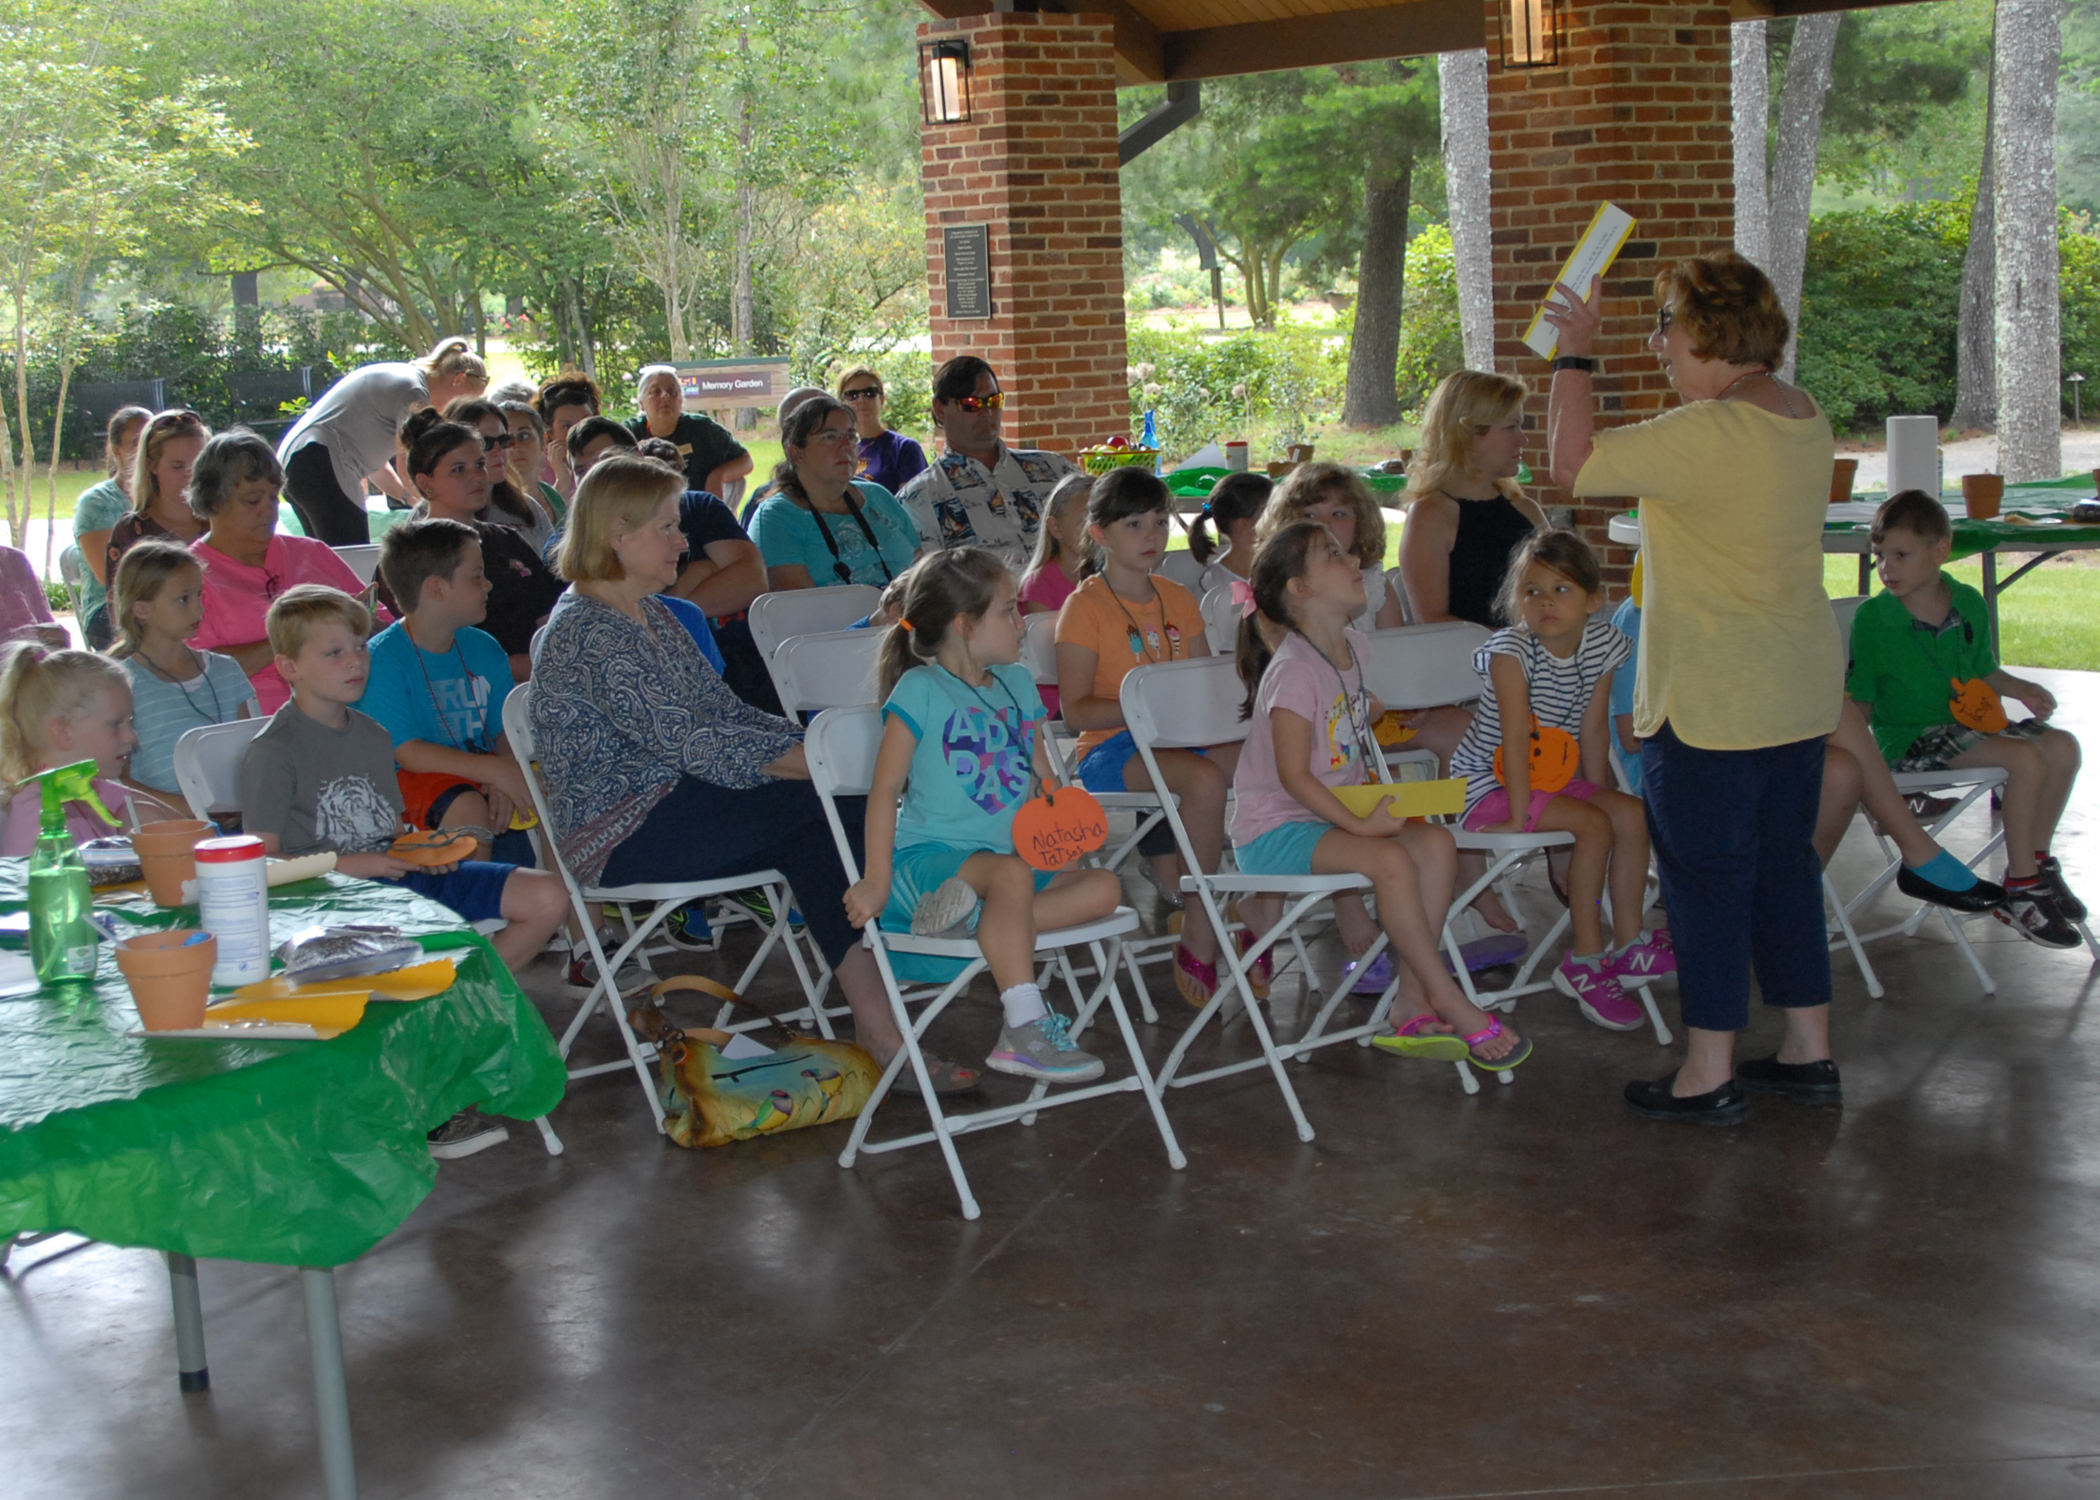 Children's Garden program set for Feb. 10 at LSU AgCenter Botanic Gardens at Burden